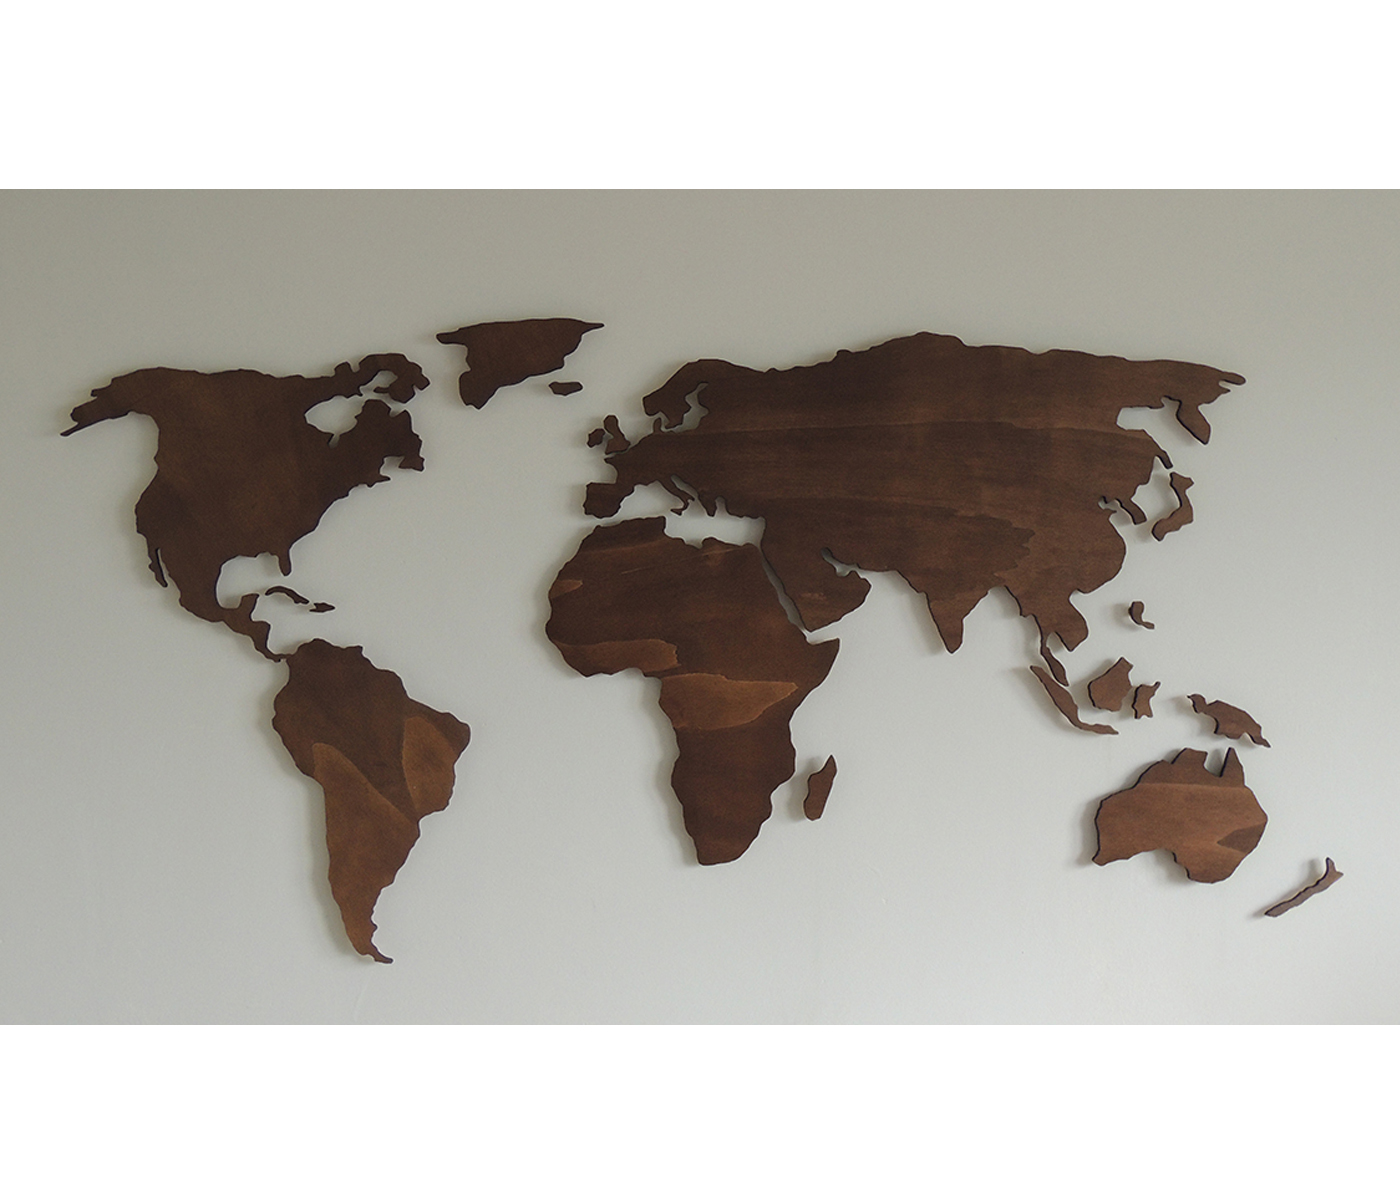 Wooden world map xl paspartoet paspartoet wooden world map xl gumiabroncs Image collections